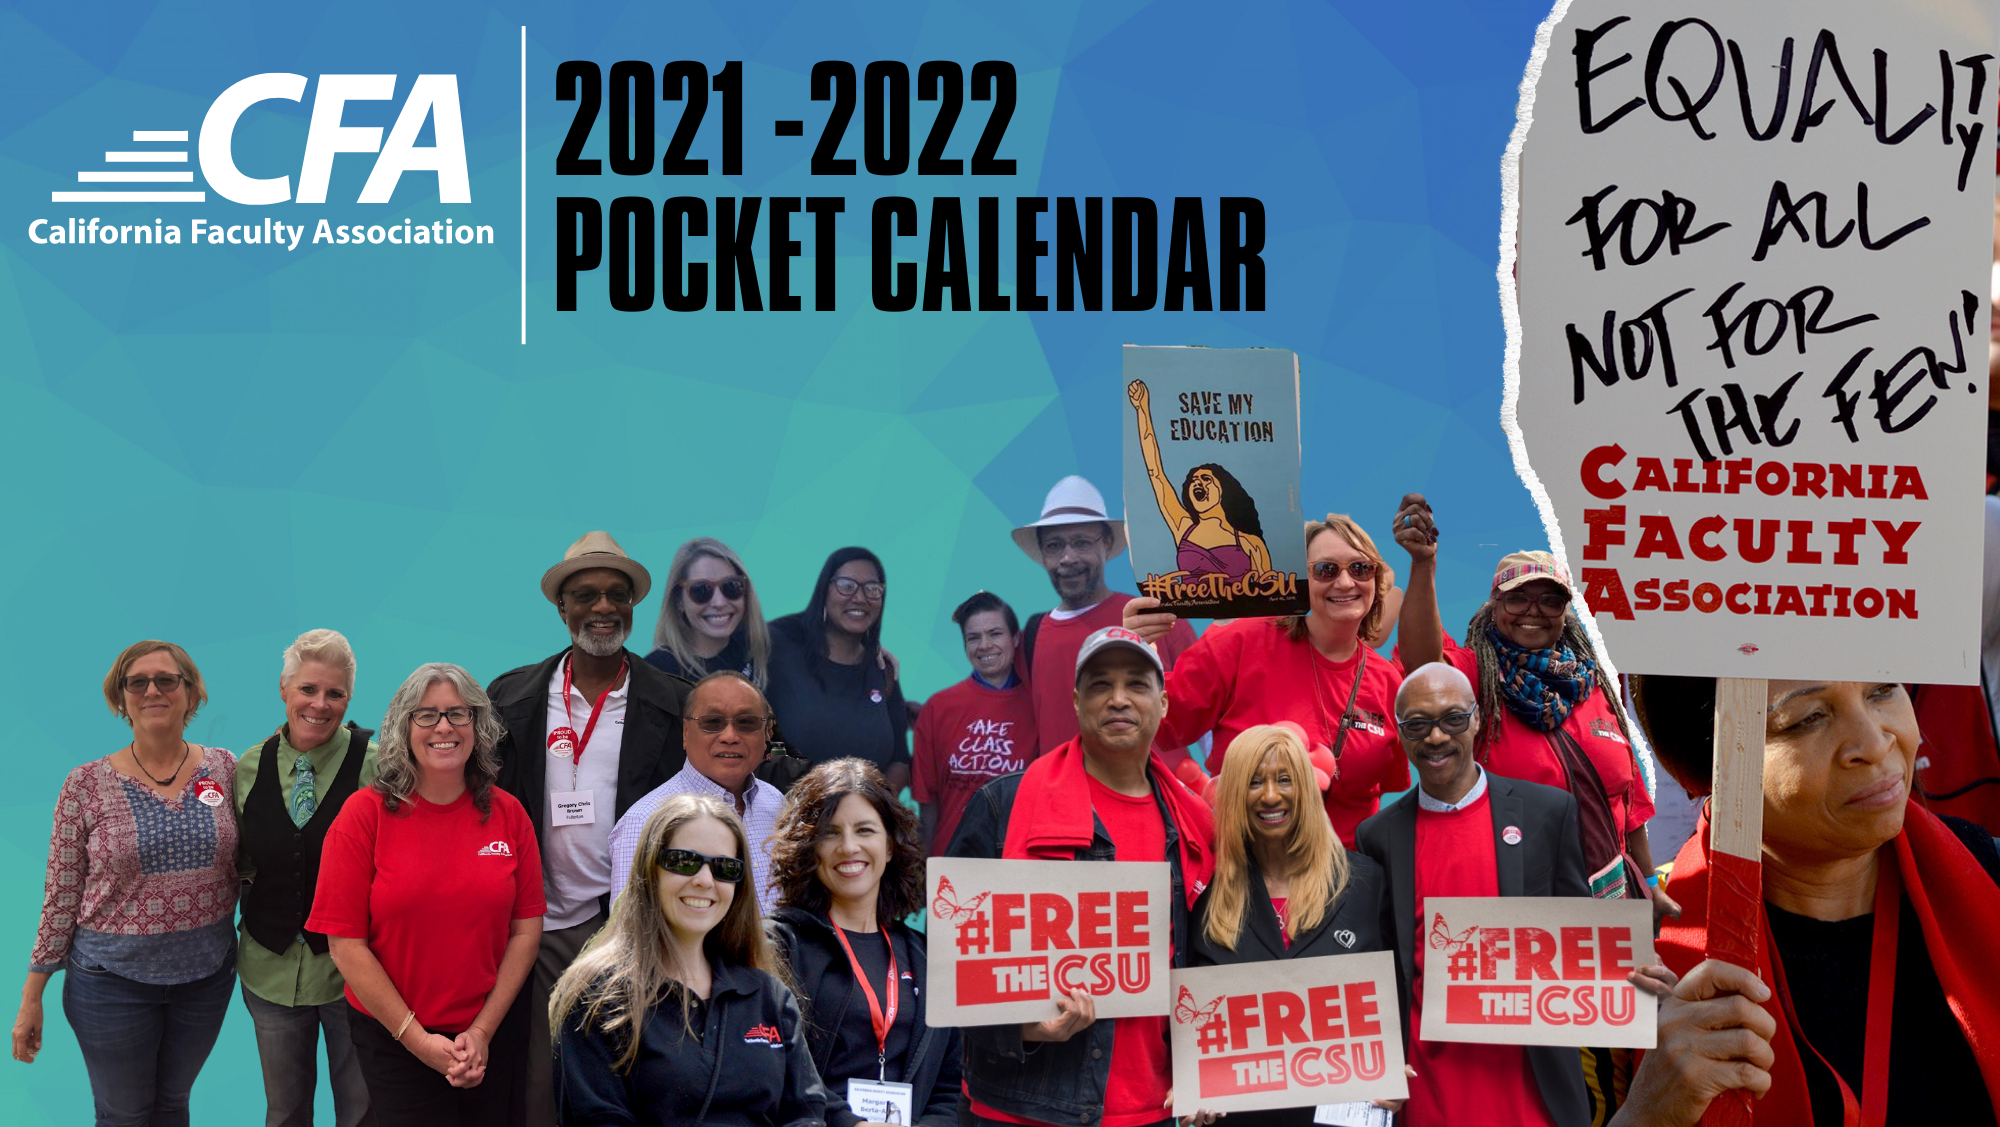 """Cover artwork for the 2021-22 pocket calendar includes groups of CFA members and a member holding a sign saying """"Equality for All."""""""